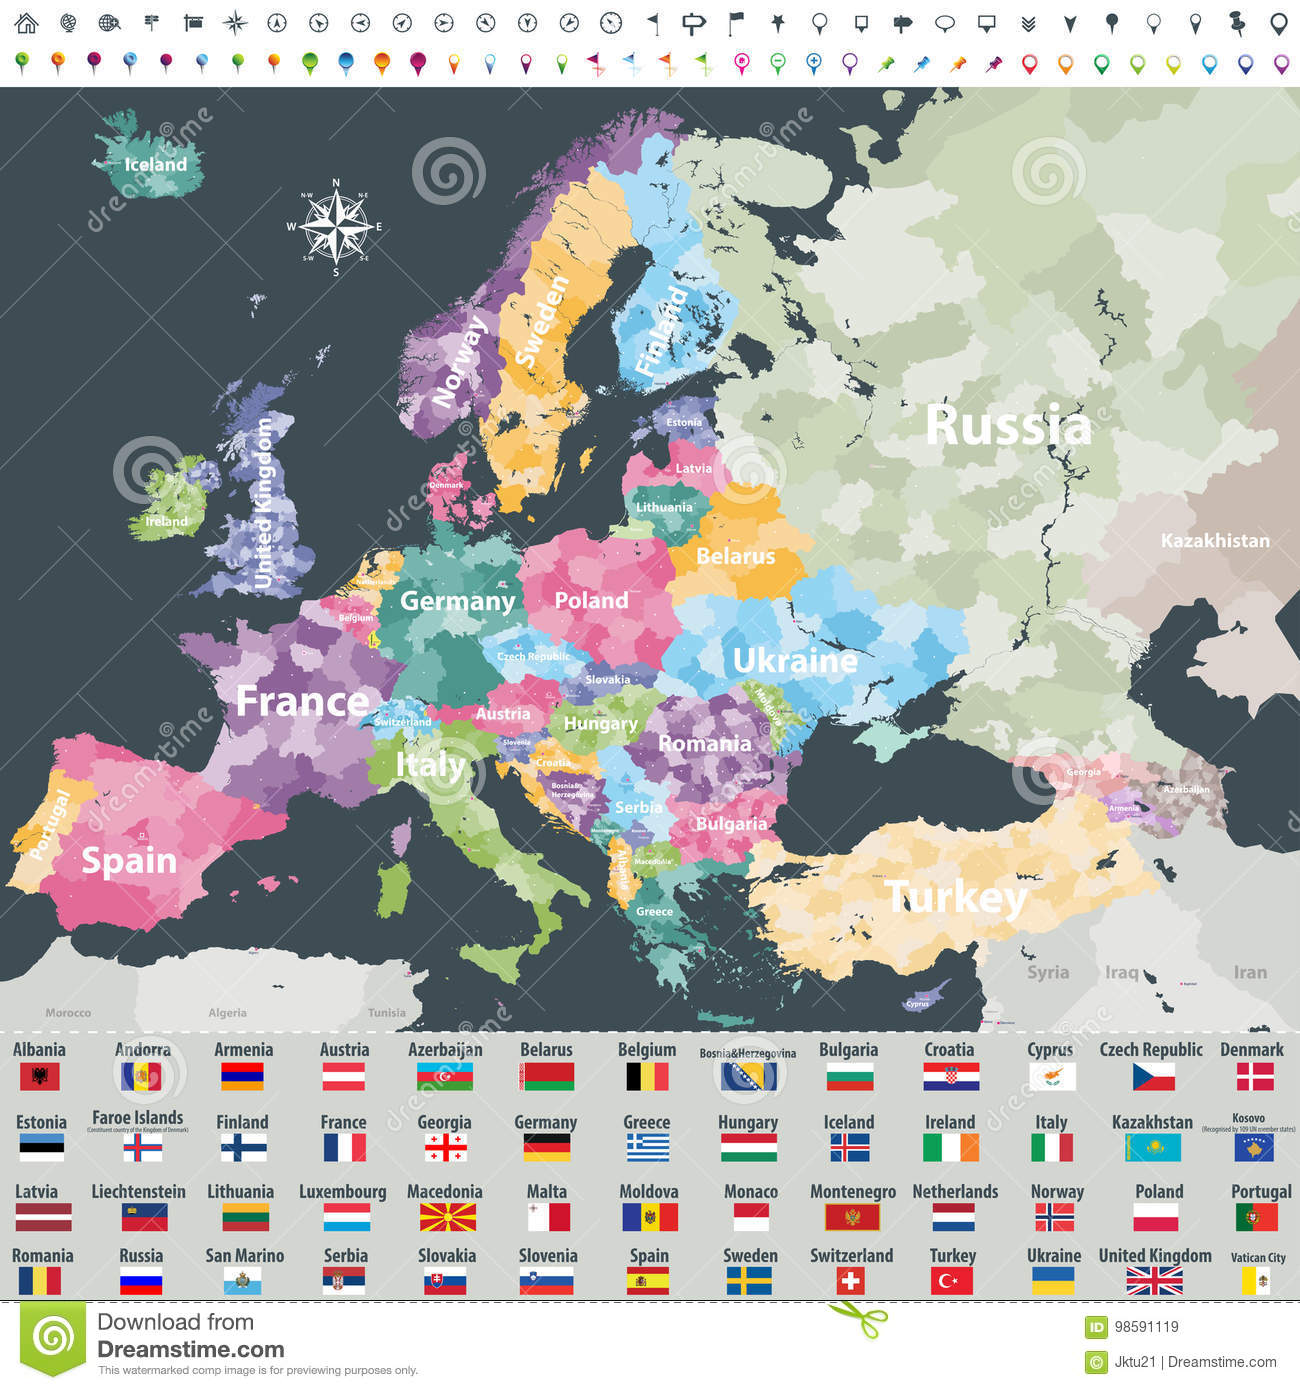 Map Of Europe Colored By Countries With Regions Borders Stock